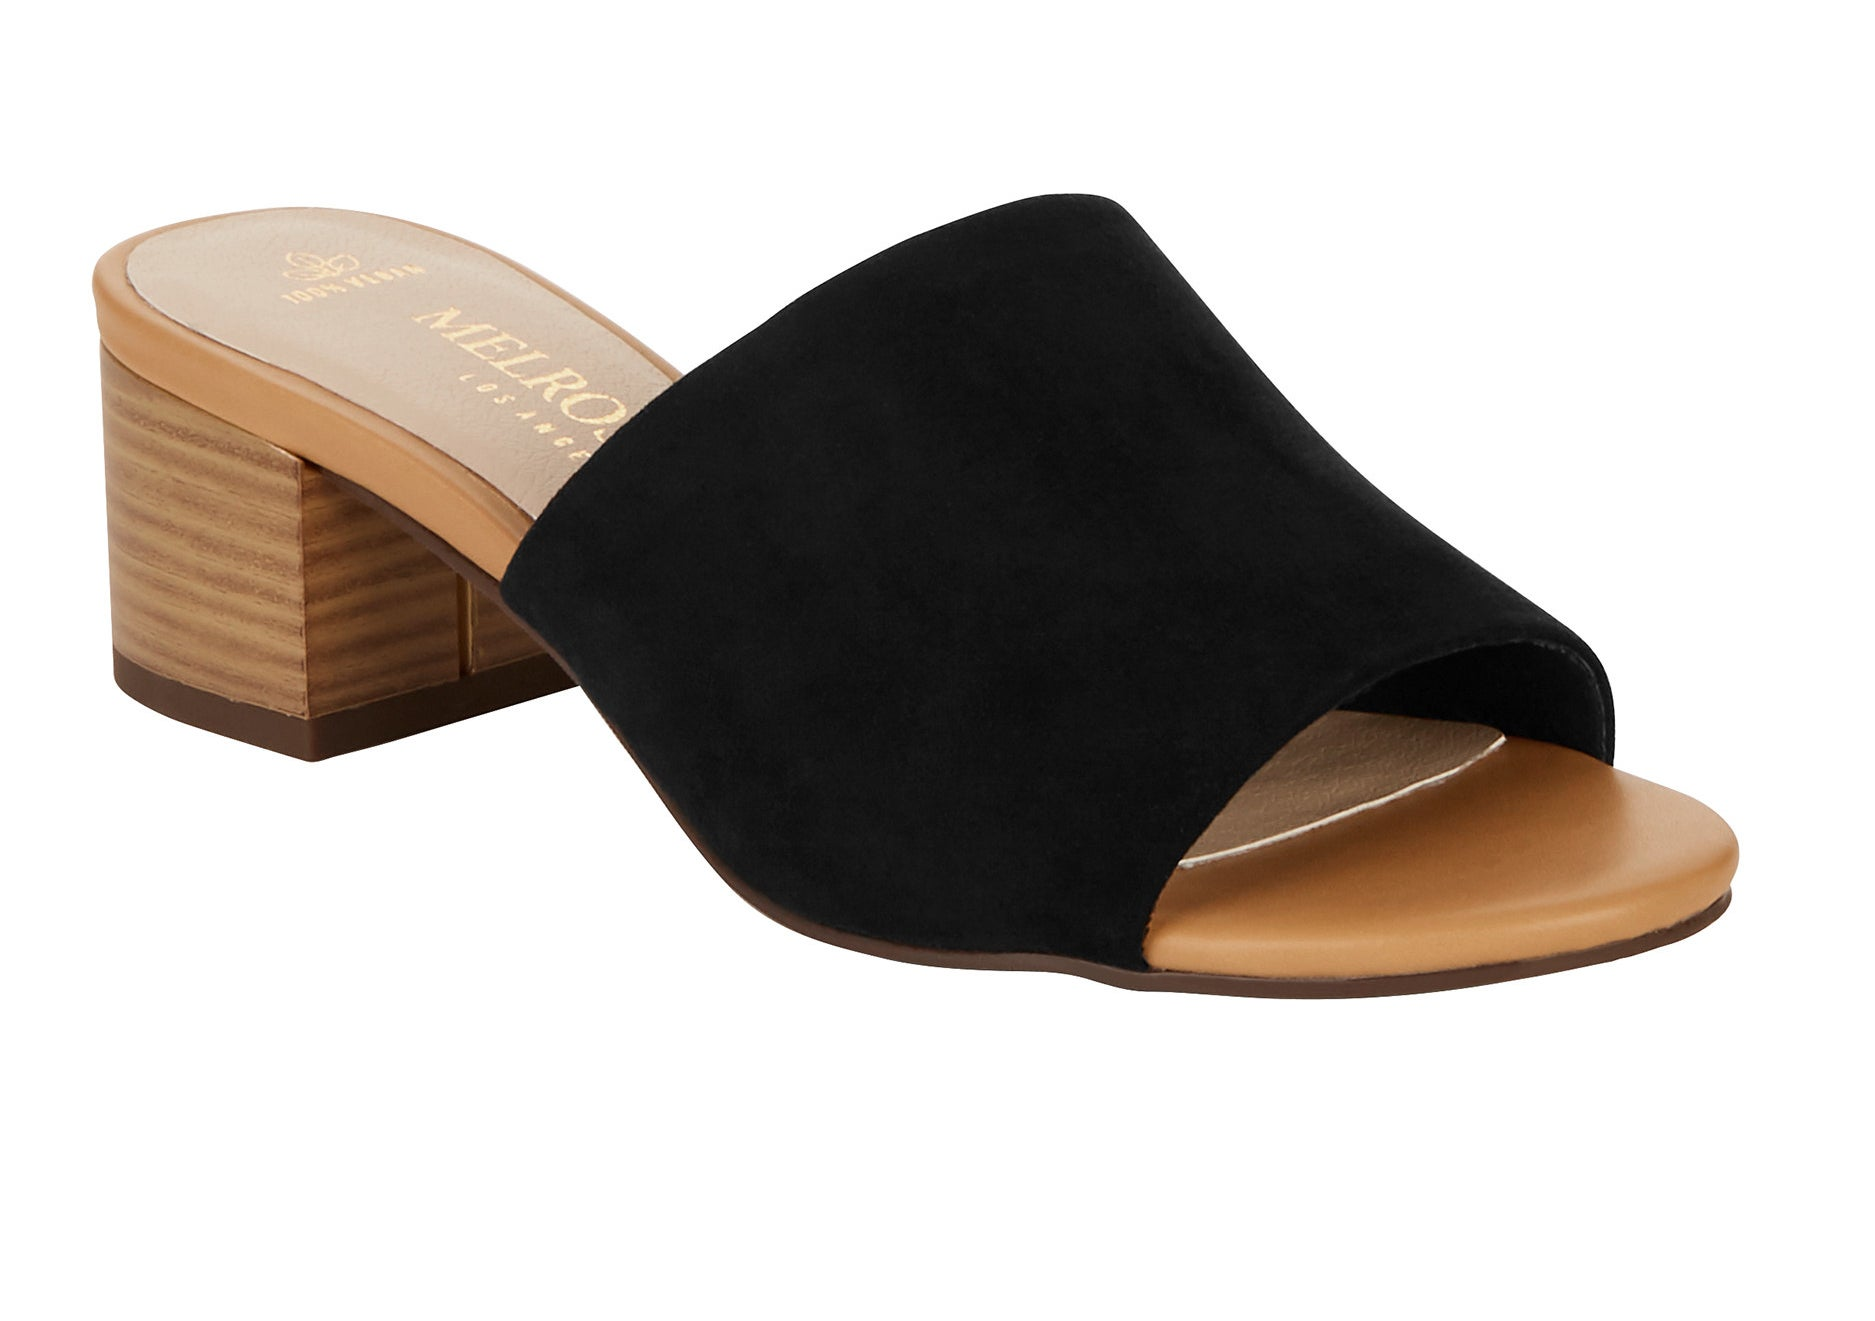 A black suede block heel slide sandal with a tan insole